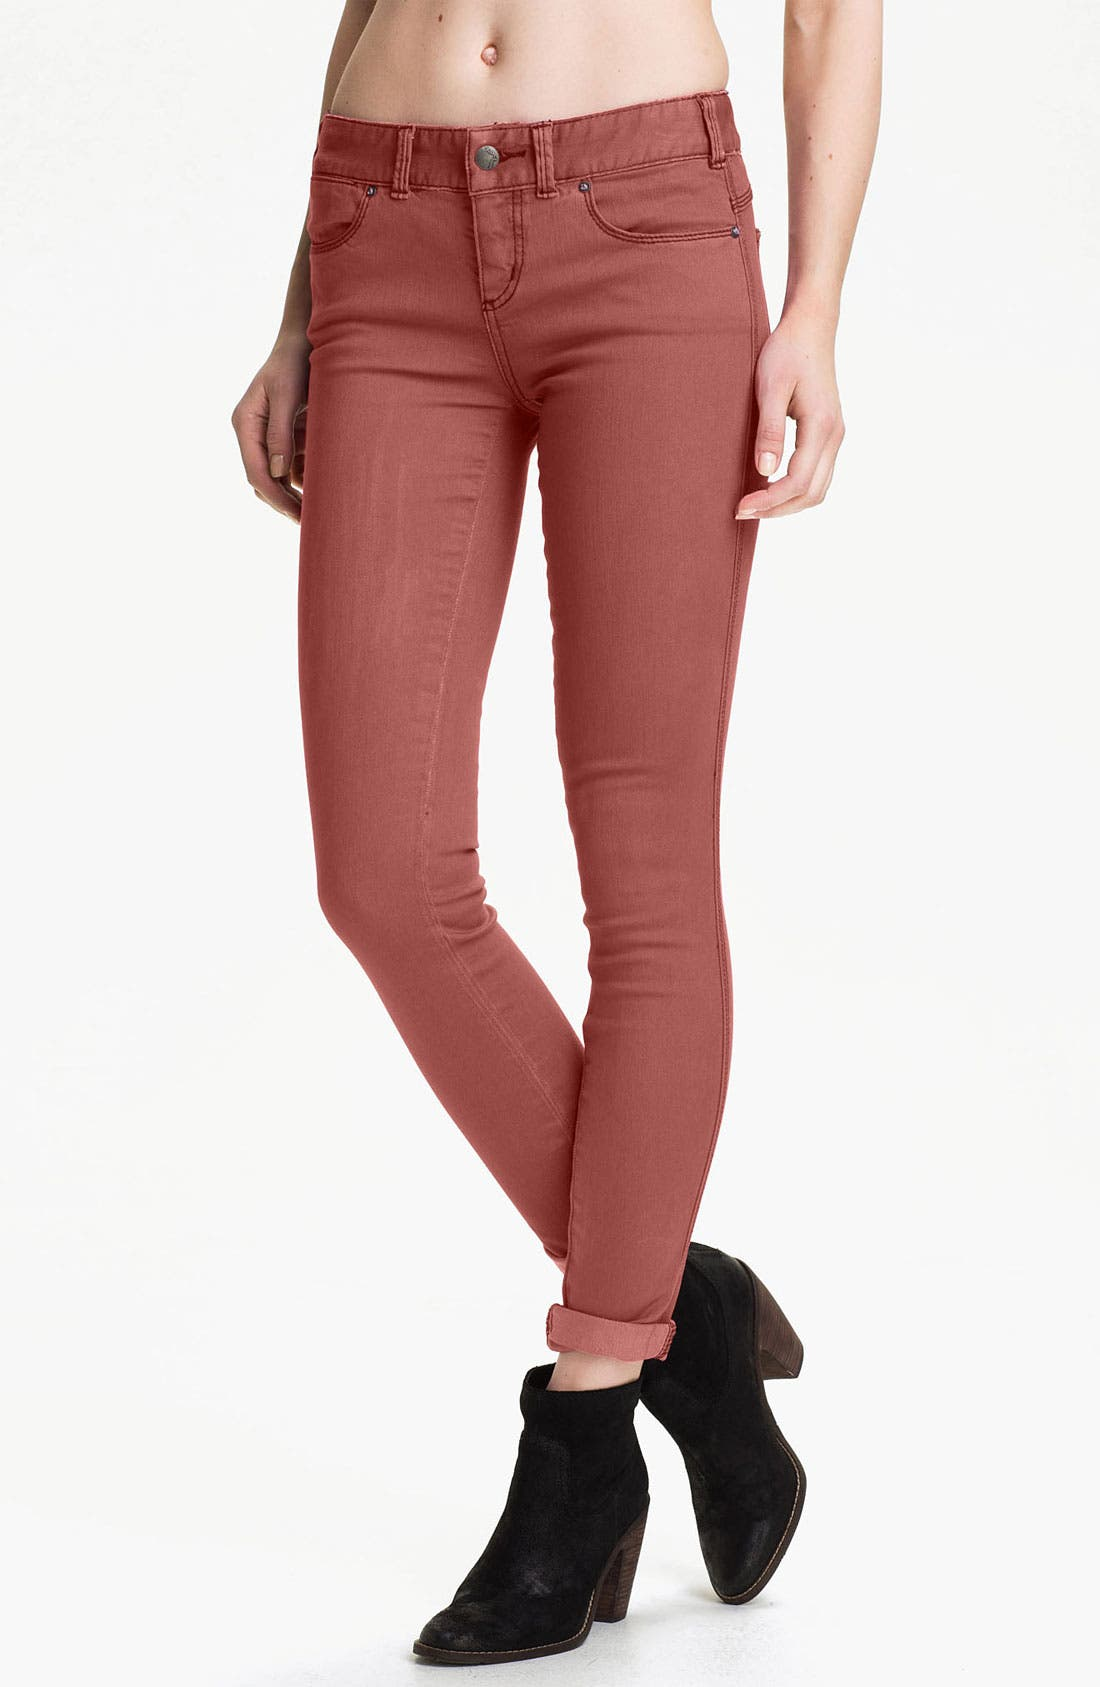 Main Image - Free People Colored Stretch Denim Skinny Jeans (Maroon)